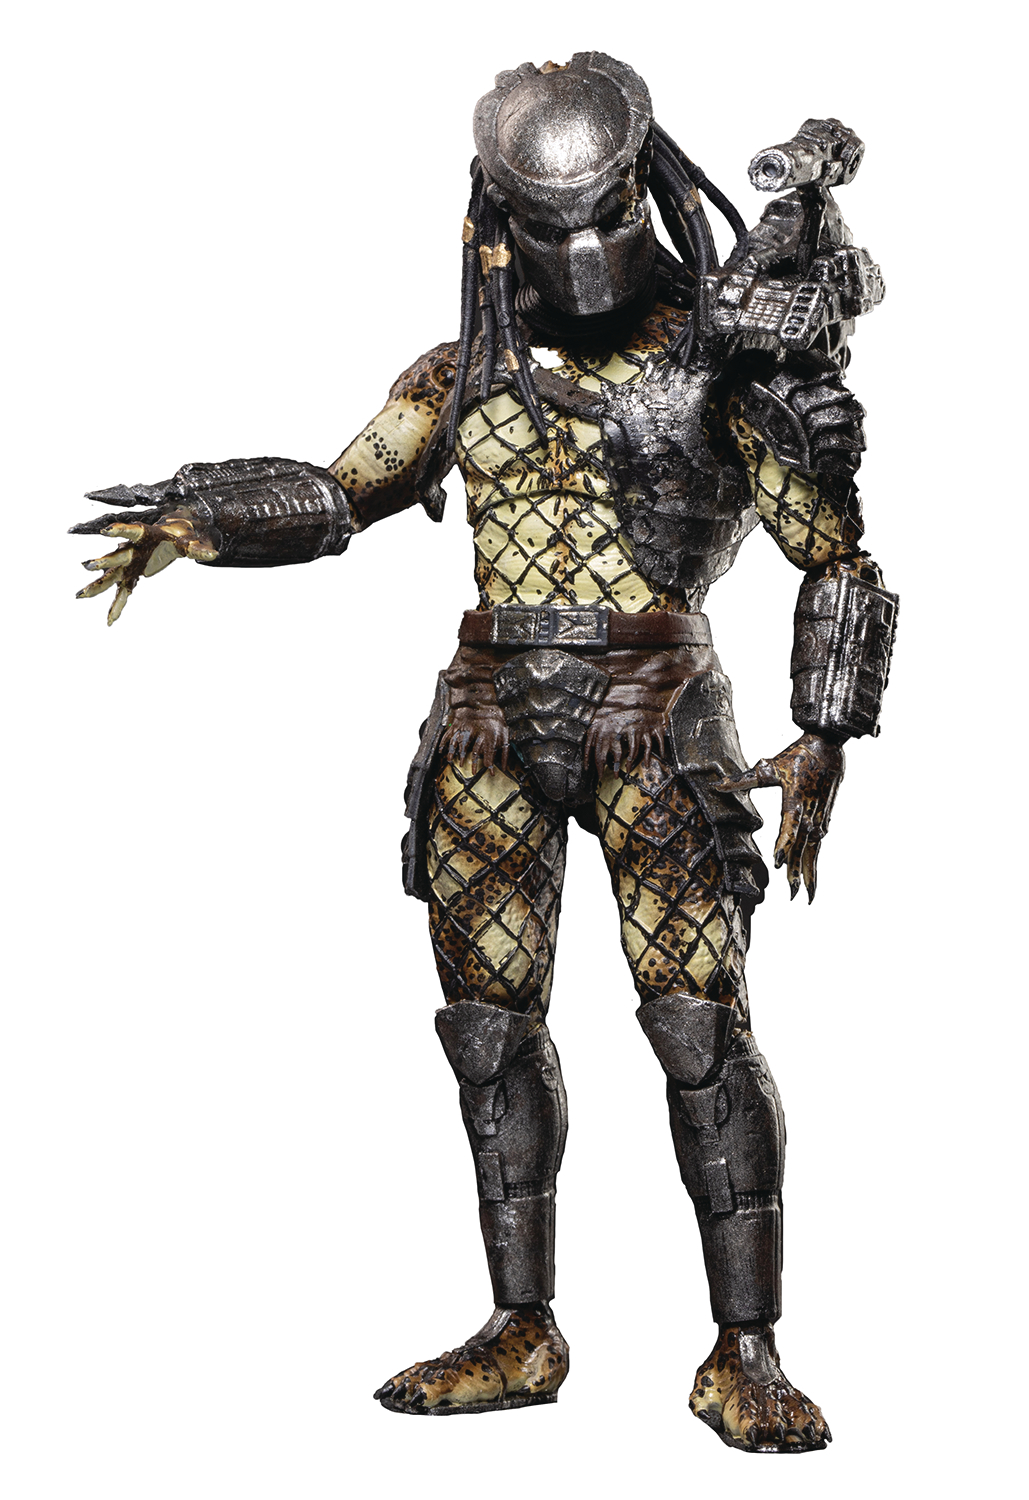 PREDATORS ARMORED CRUCIFIED PREDATOR PX 1/18 SCALE FIG (JAN2